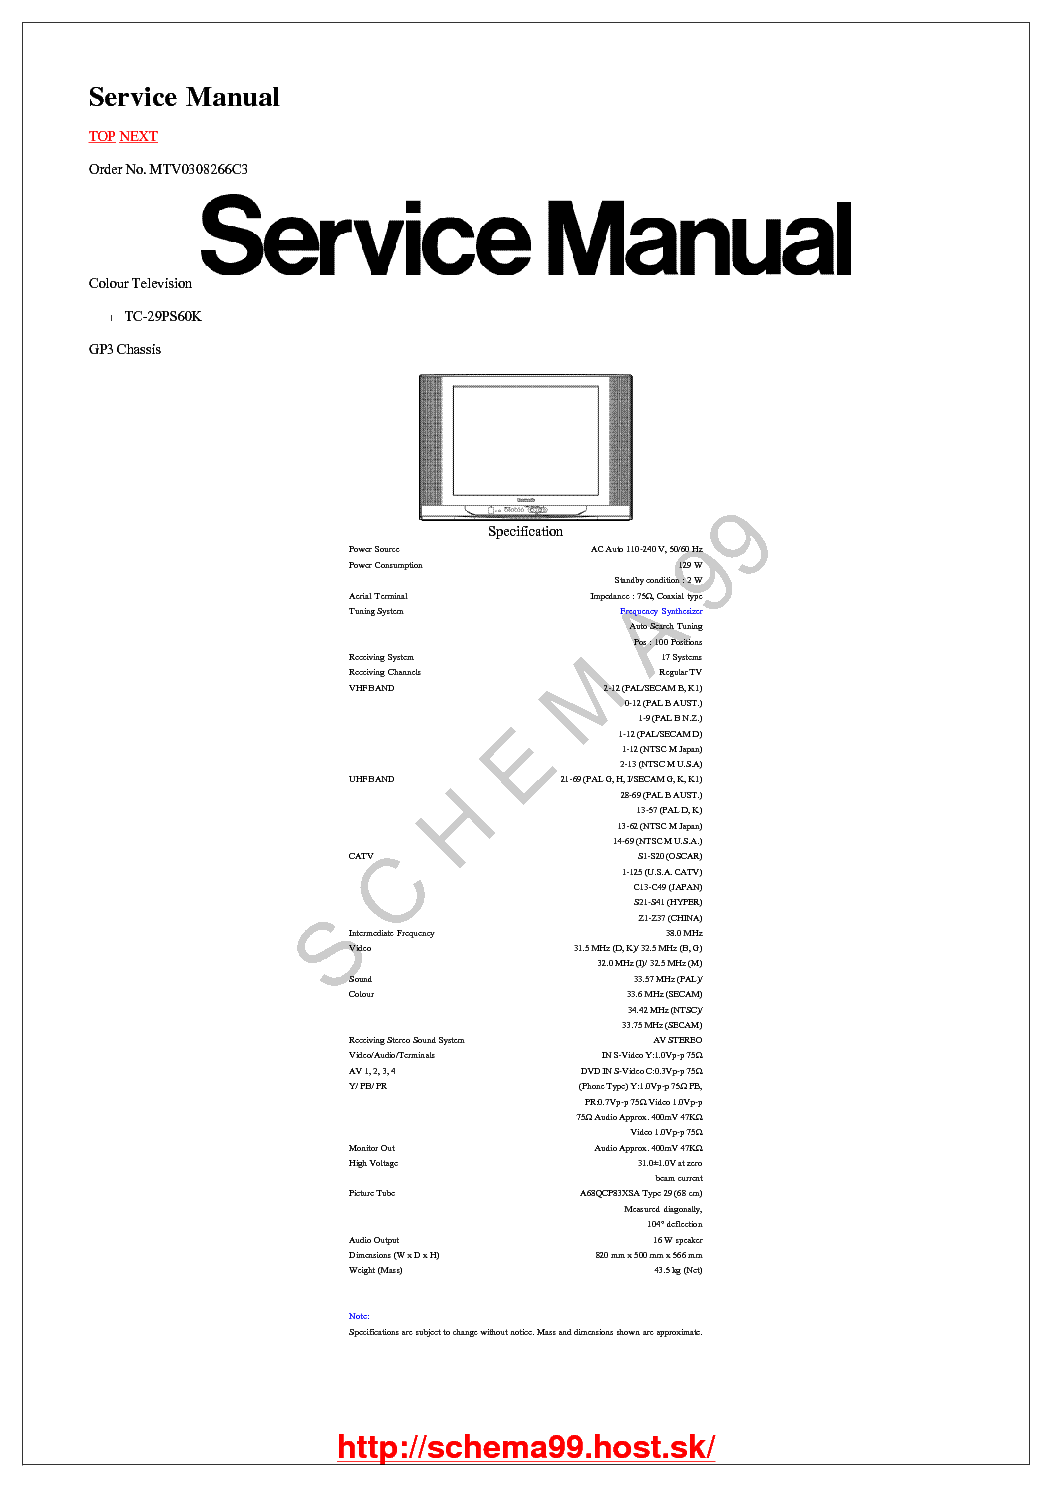 PANASONIC CH GP3 TC-29PS60K SM Service Manual download